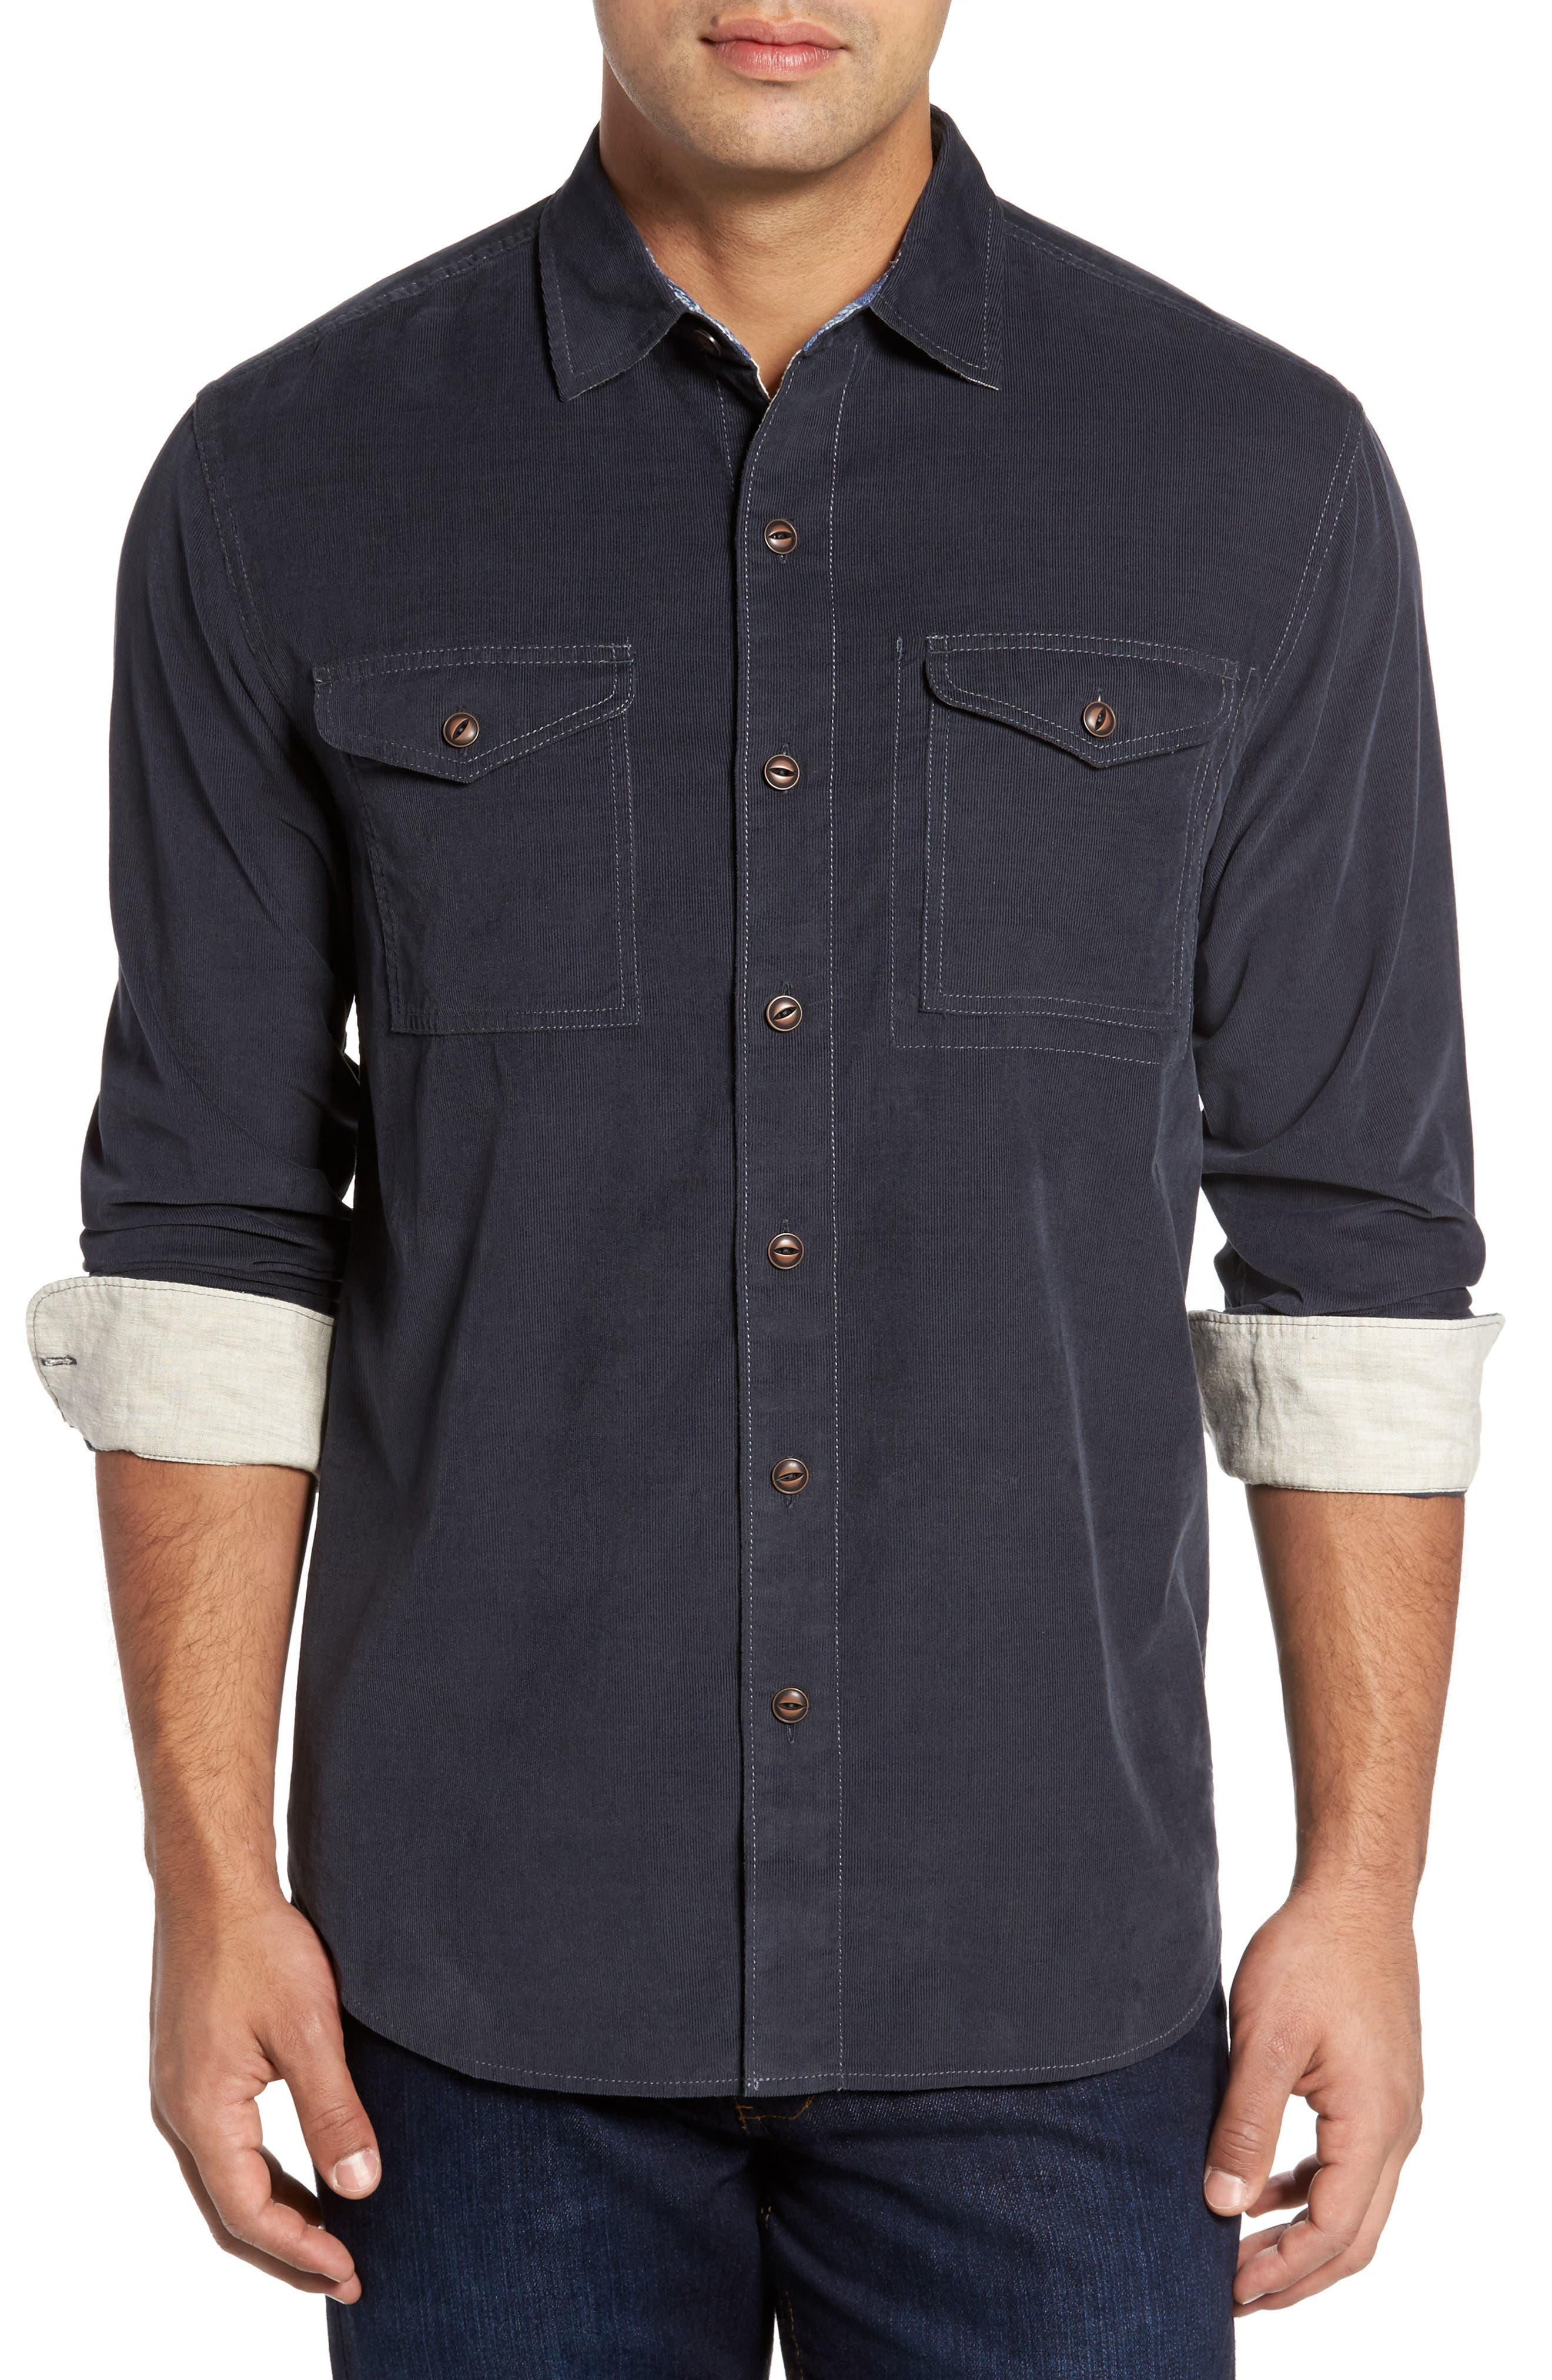 Alternate Image 1 Selected - Tommy Bahama Harrison Cord Standard Fit Shirt